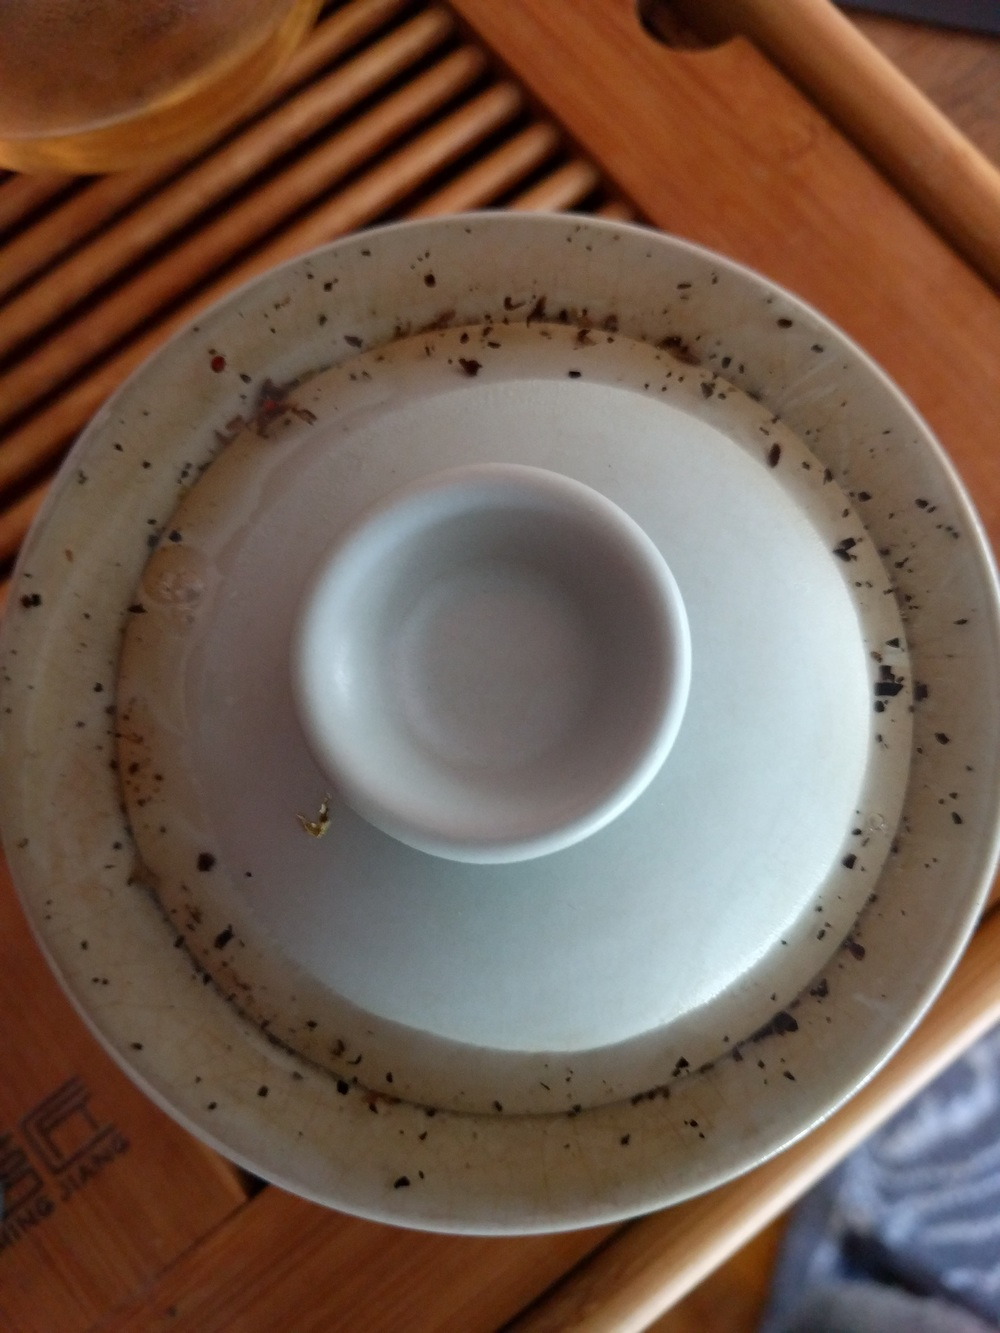 Even though I steeped this tea in a smaller sized gaiwan, this tea is quite hardy and can be brewed consistently and in a larger pot.